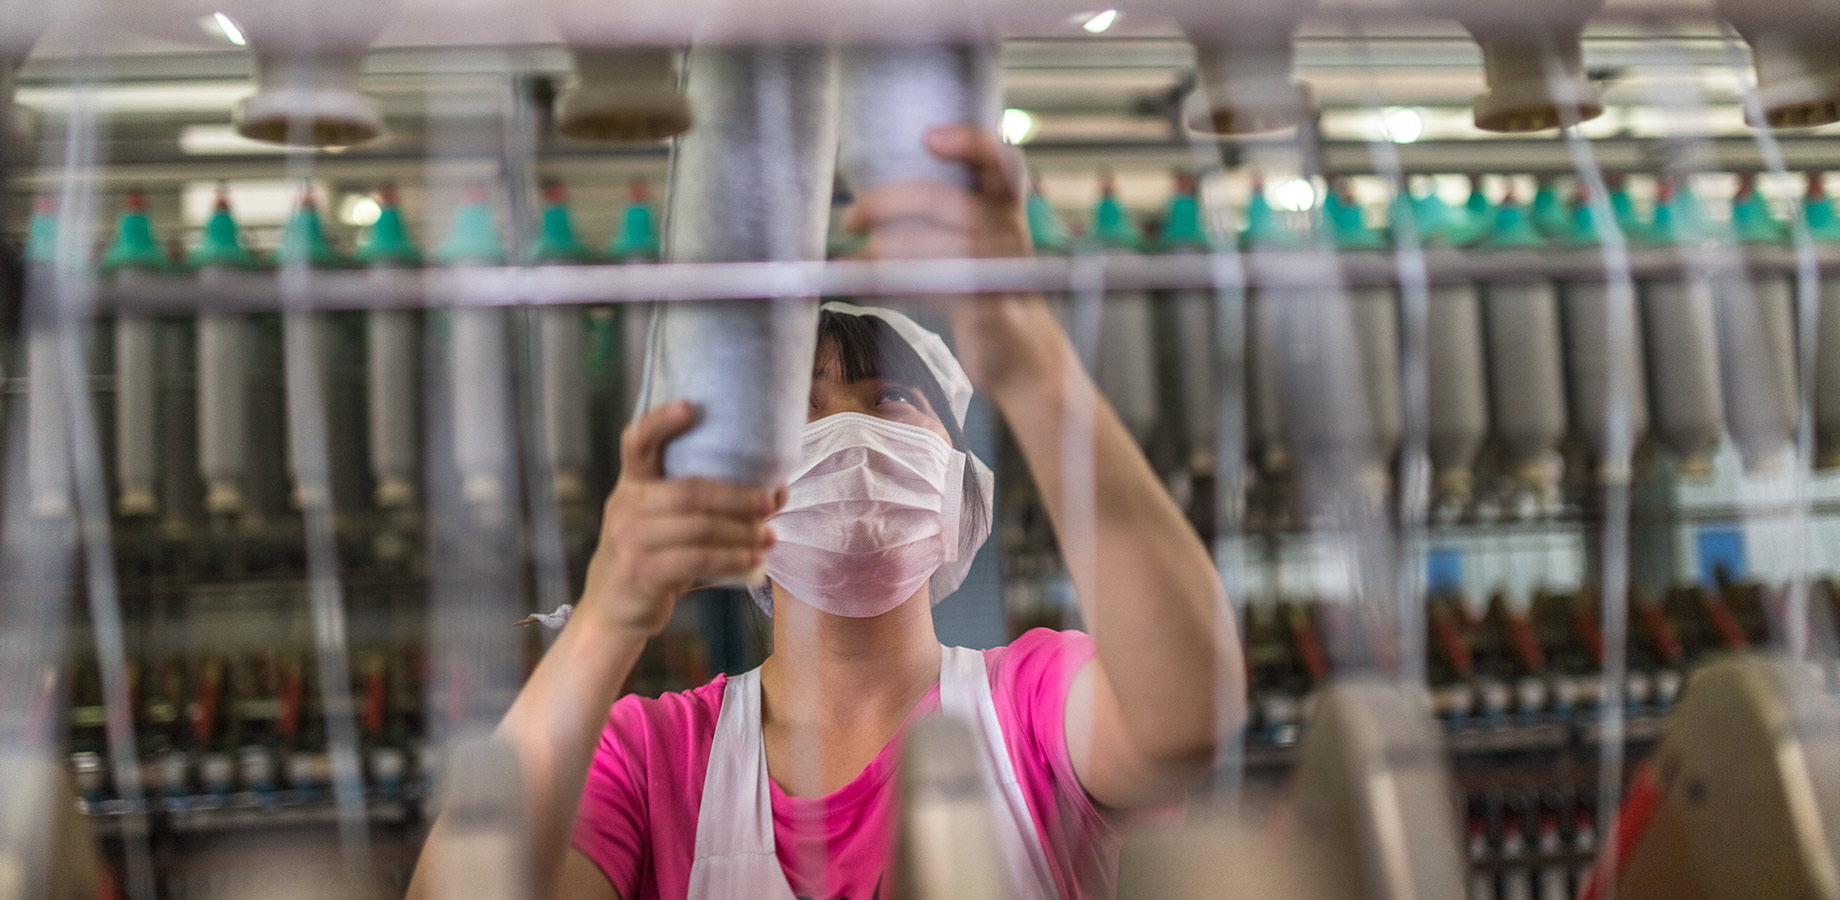 Woman working in a production plant to represent the manufacturing industry